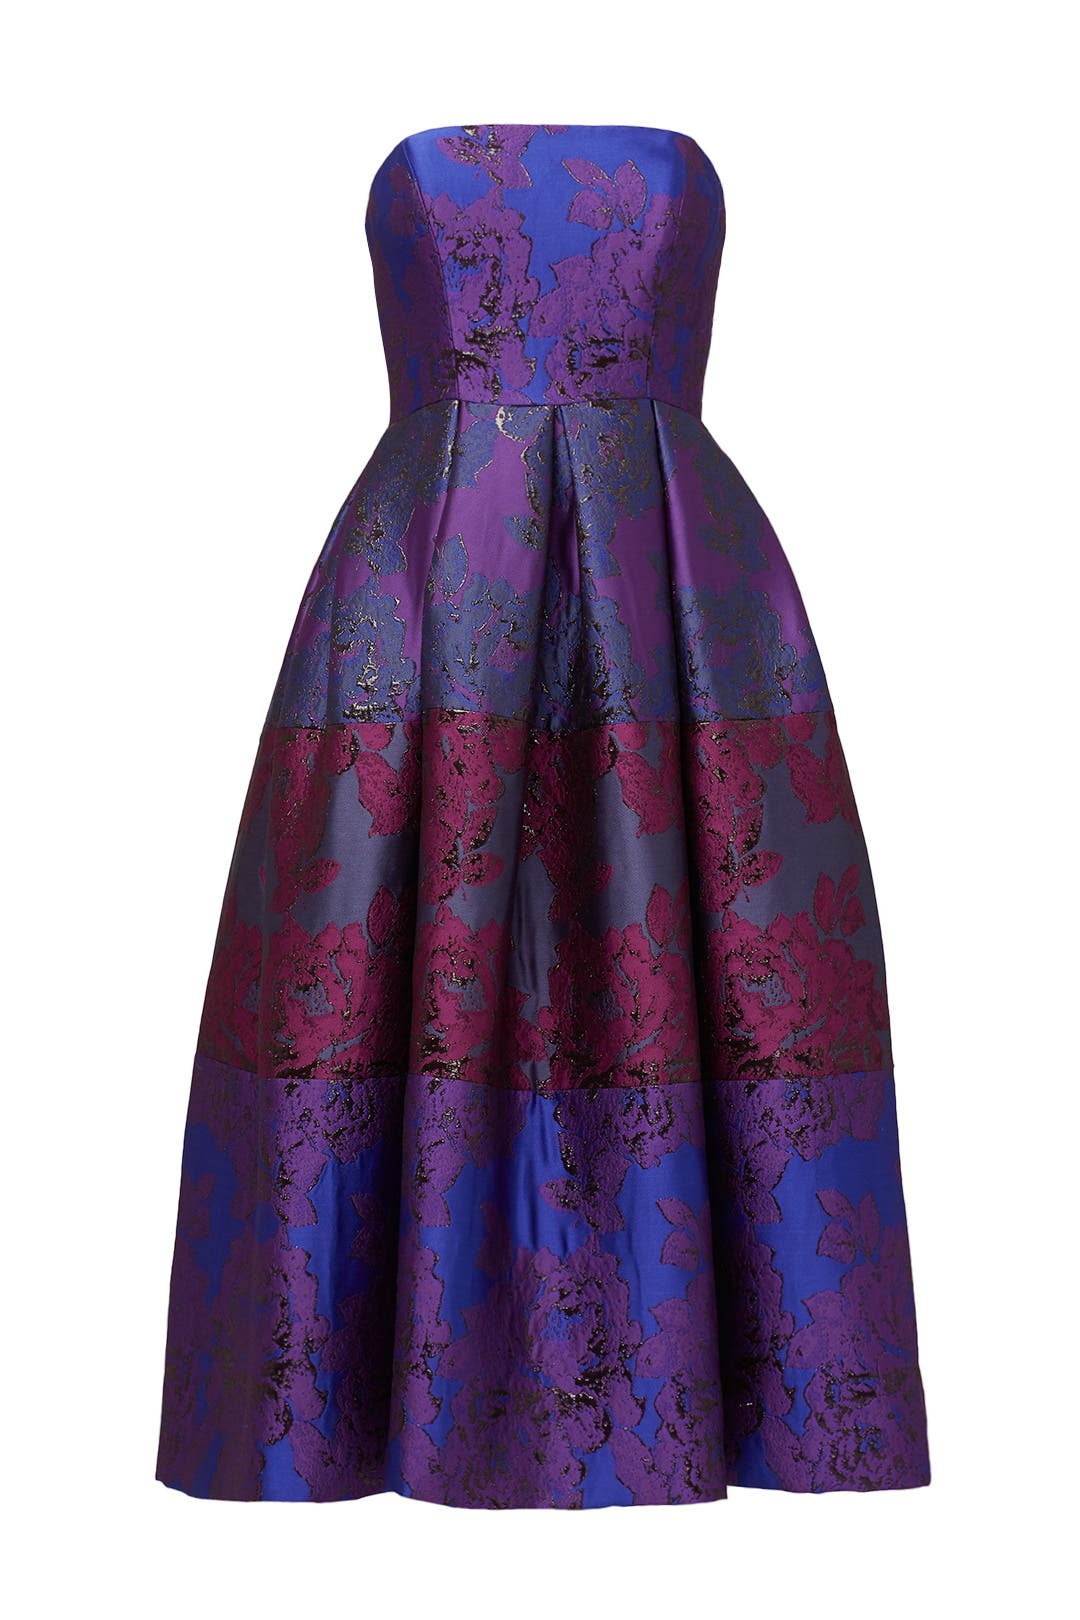 Purple Palace Dress by Cynthia Rowley for $65 | Rent the Runway